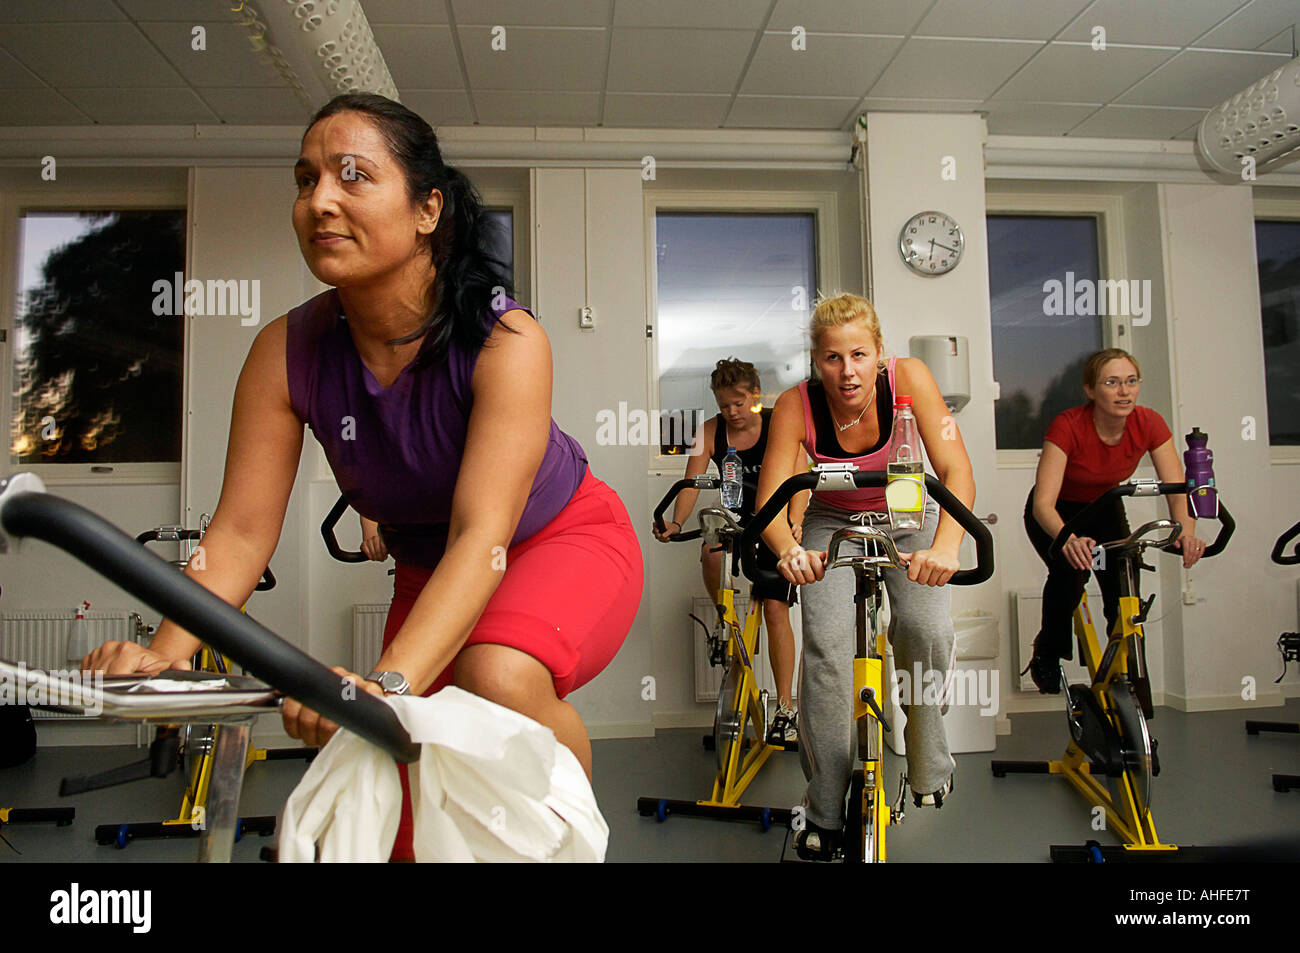 Group Cycling Spinning Class In A Gym Stock Photo 14458619 Alamy